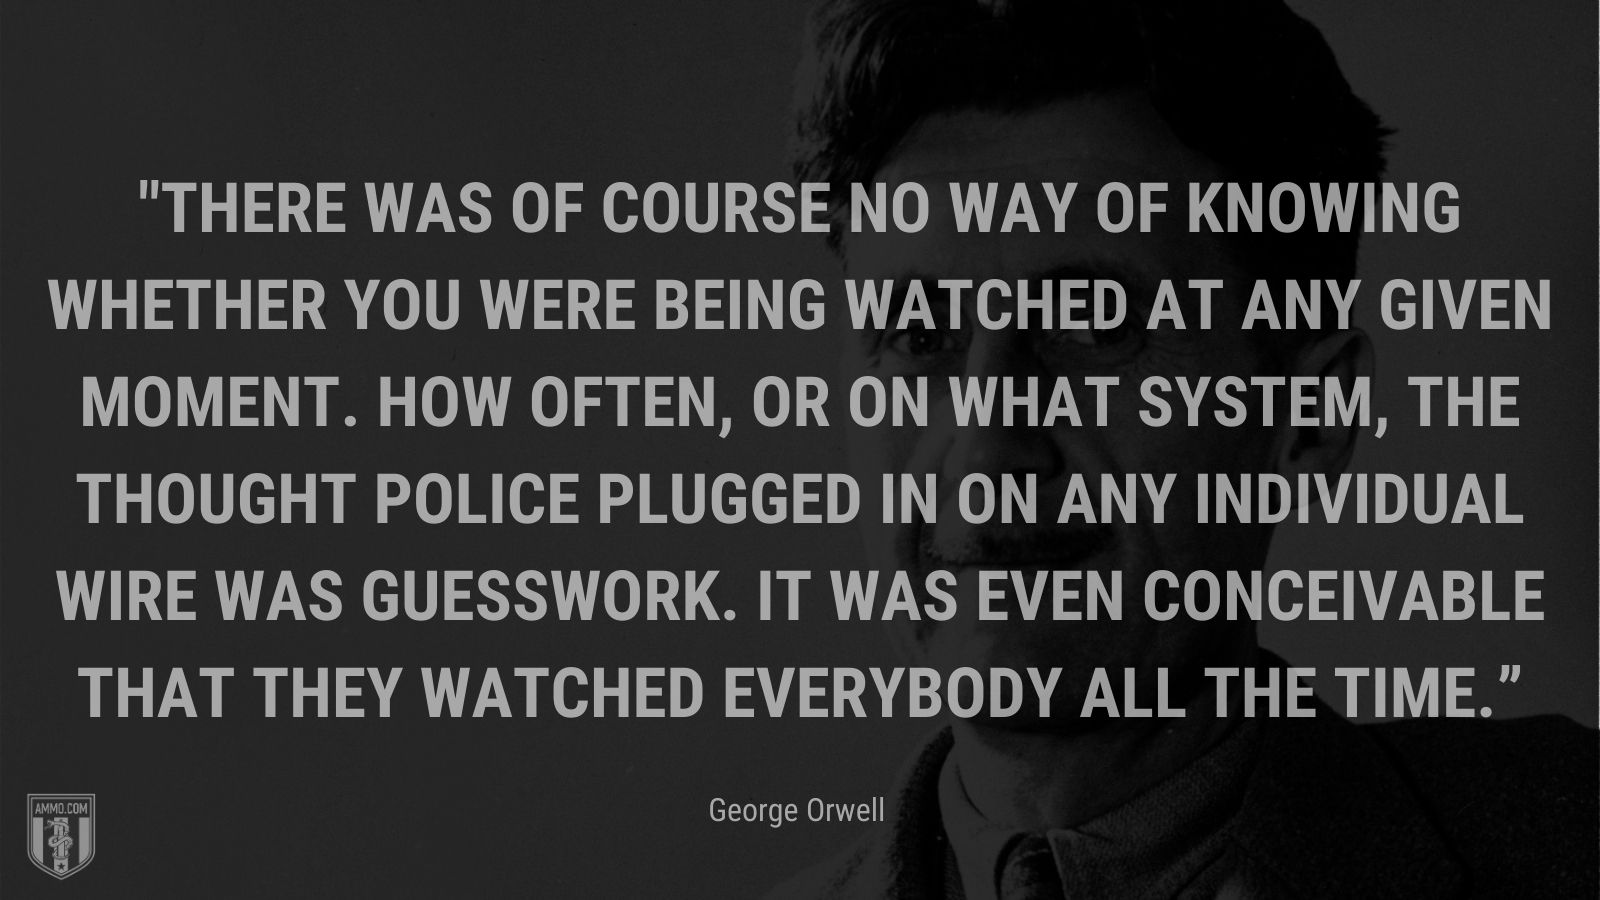 """""""There was of course no way of knowing whether you were being watched at any given moment. How often, or on what system, the Thought Police plugged in on any individual wire was guesswork. It was even conceivable that they watched everybody all the time."""" - George Orwell"""